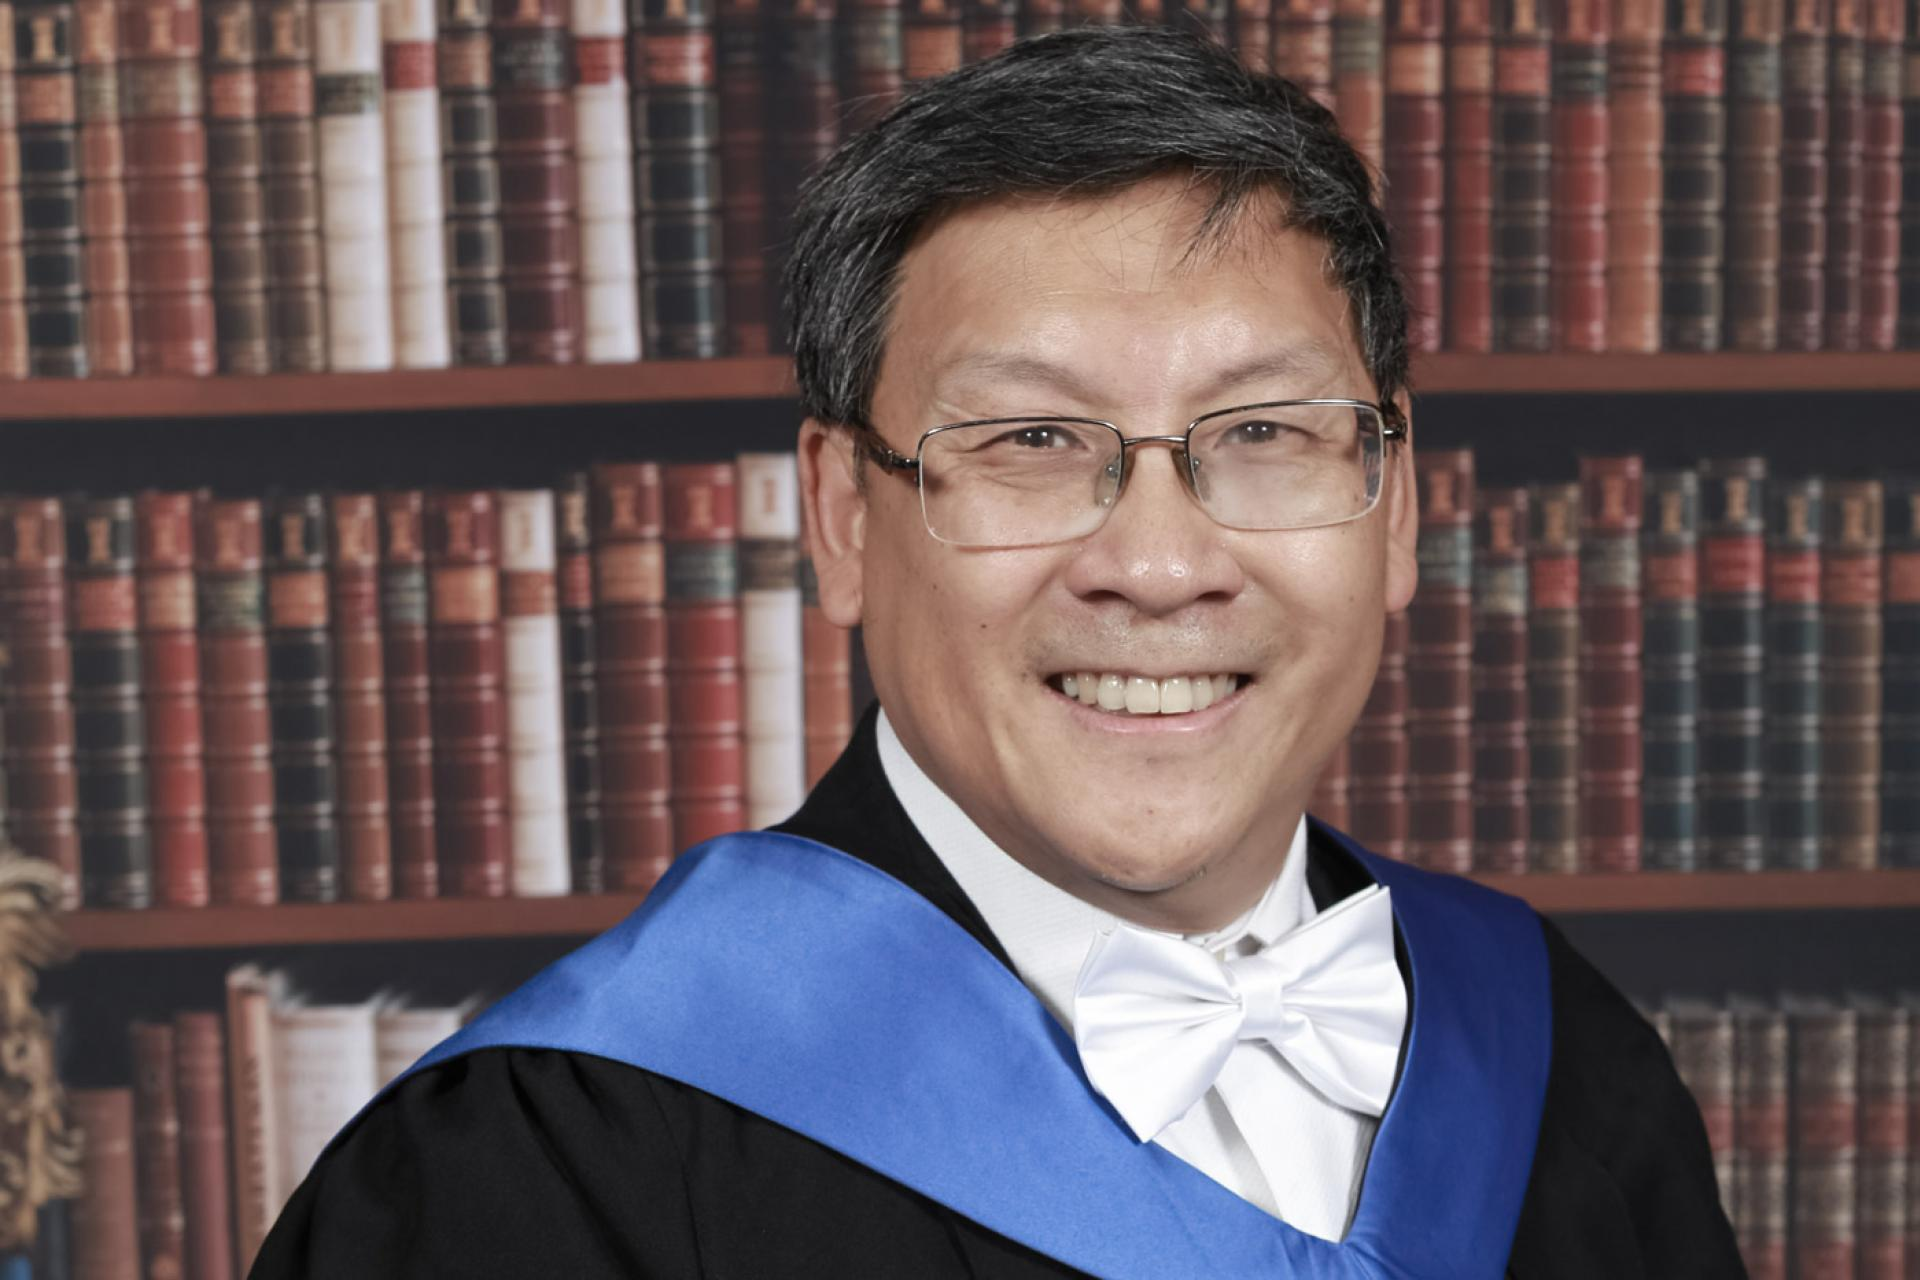 Dr Bernard Wong, LLM in Innovation, Technology and the Law Graduate